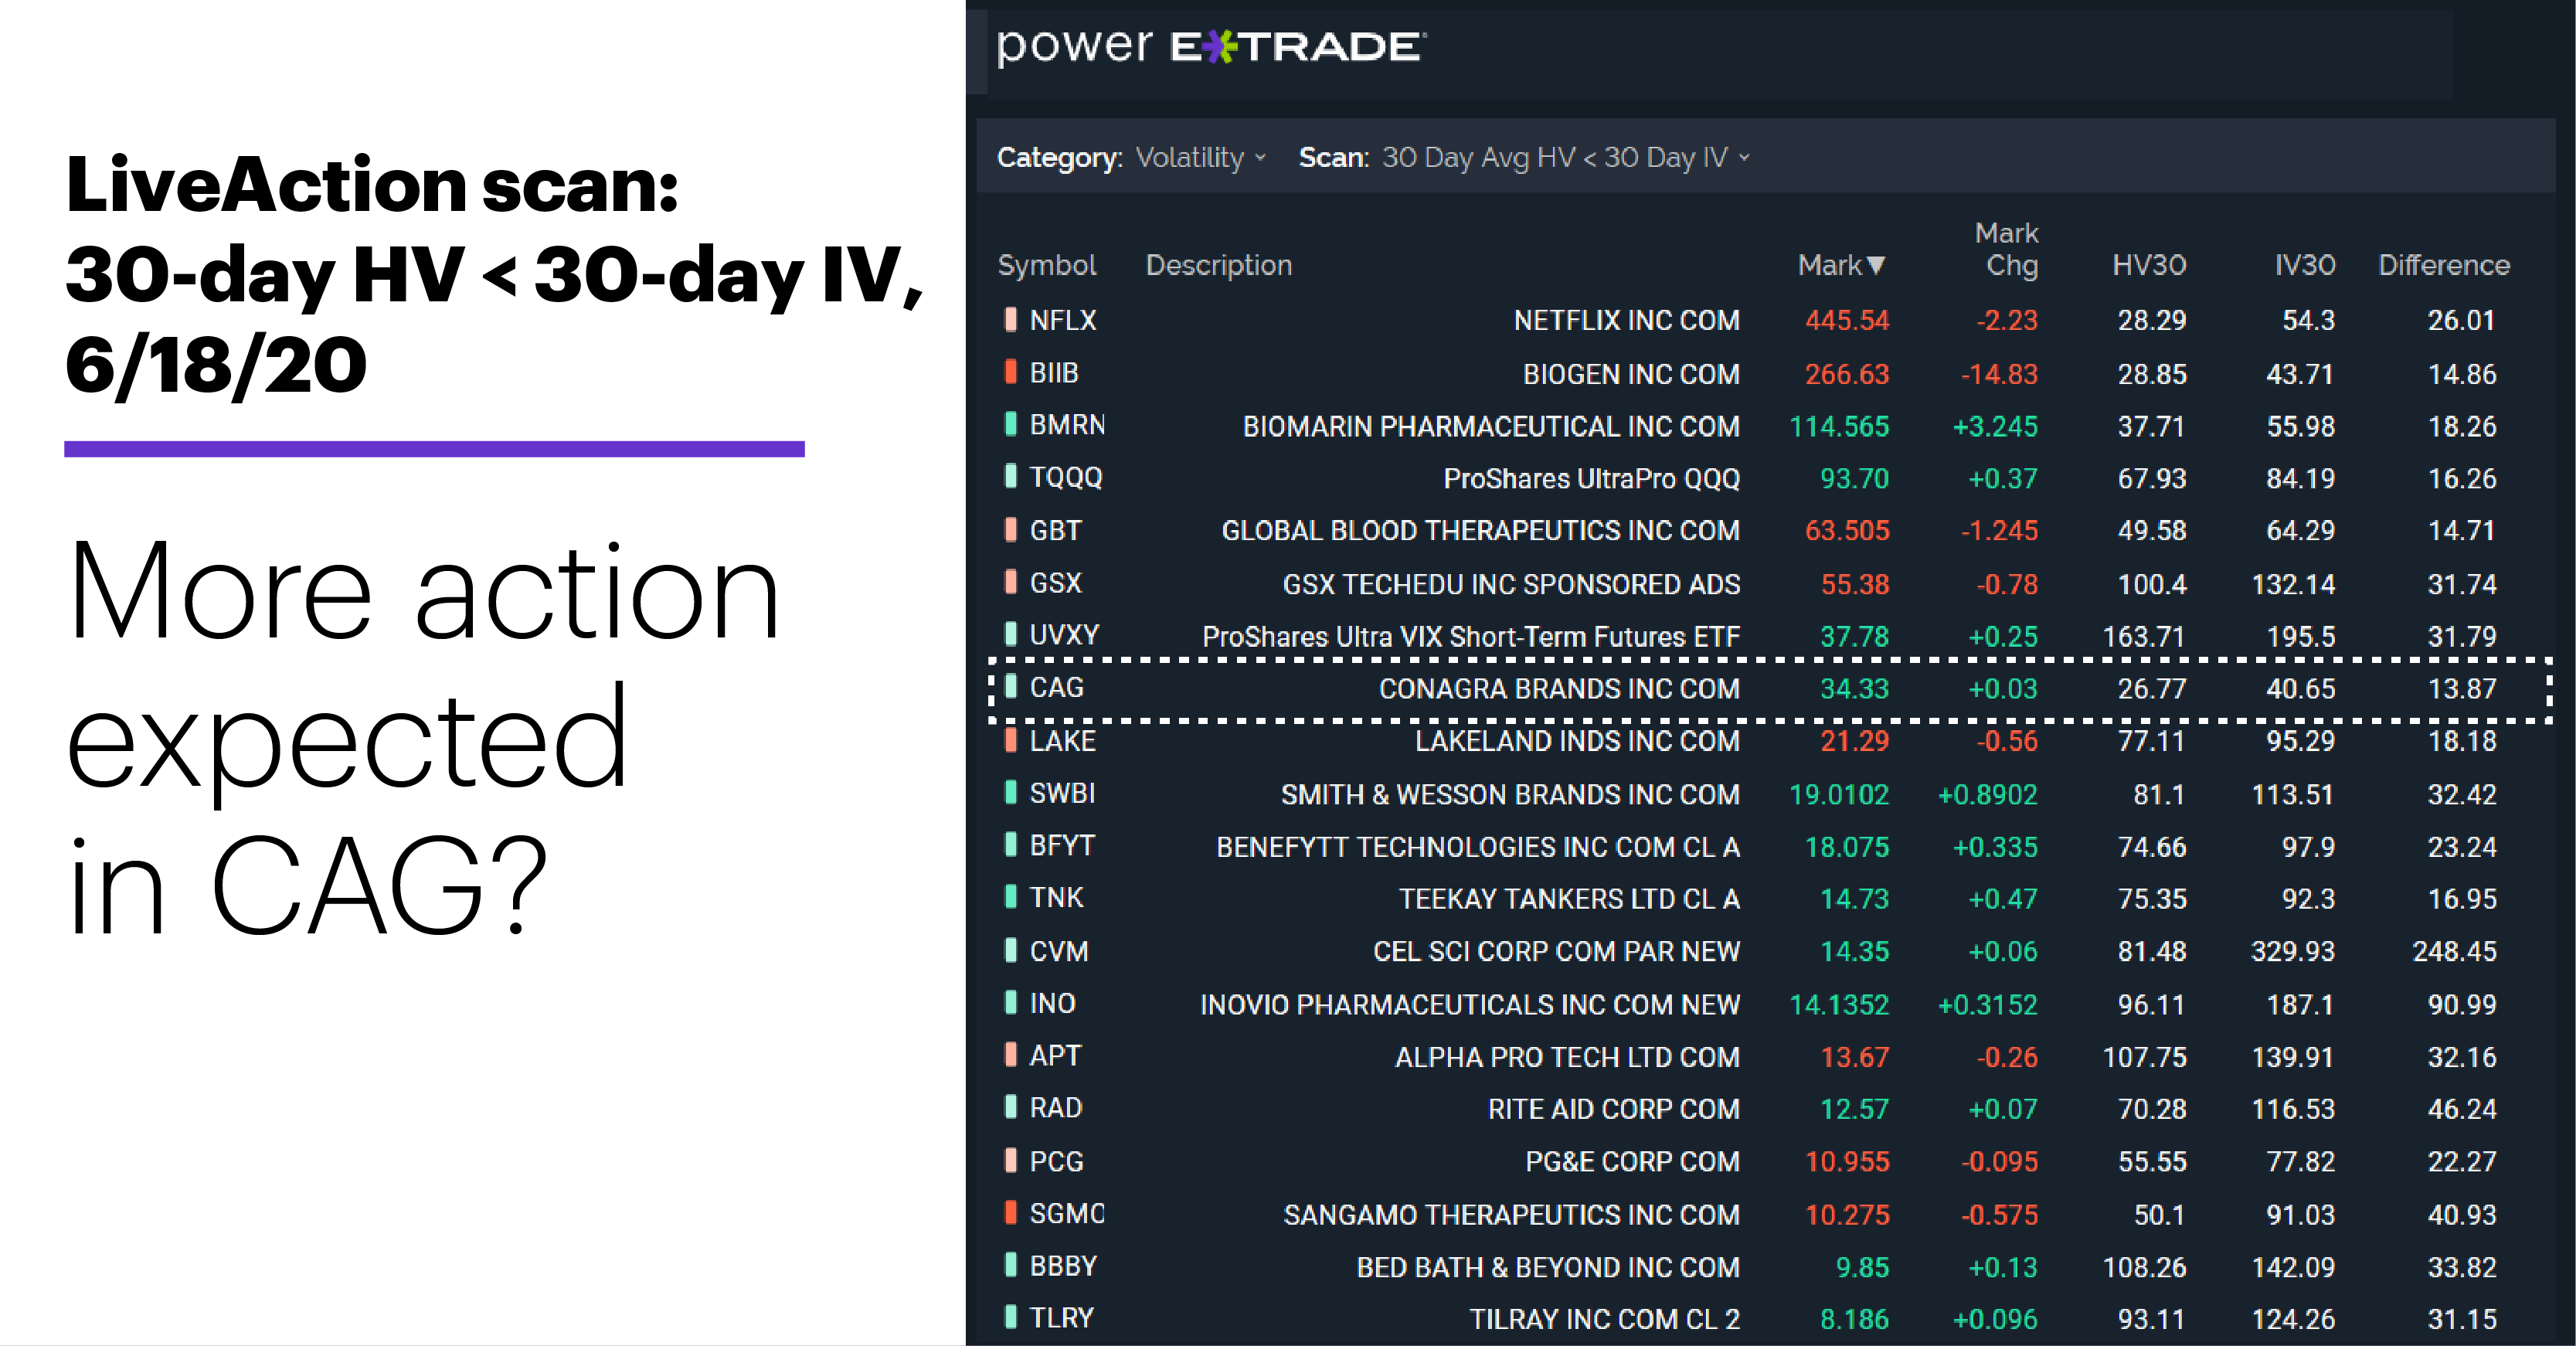 Chart 1: LiveAction scan: 30-day HV < 30-day IV, 6/18/20. More action expected in CAG?